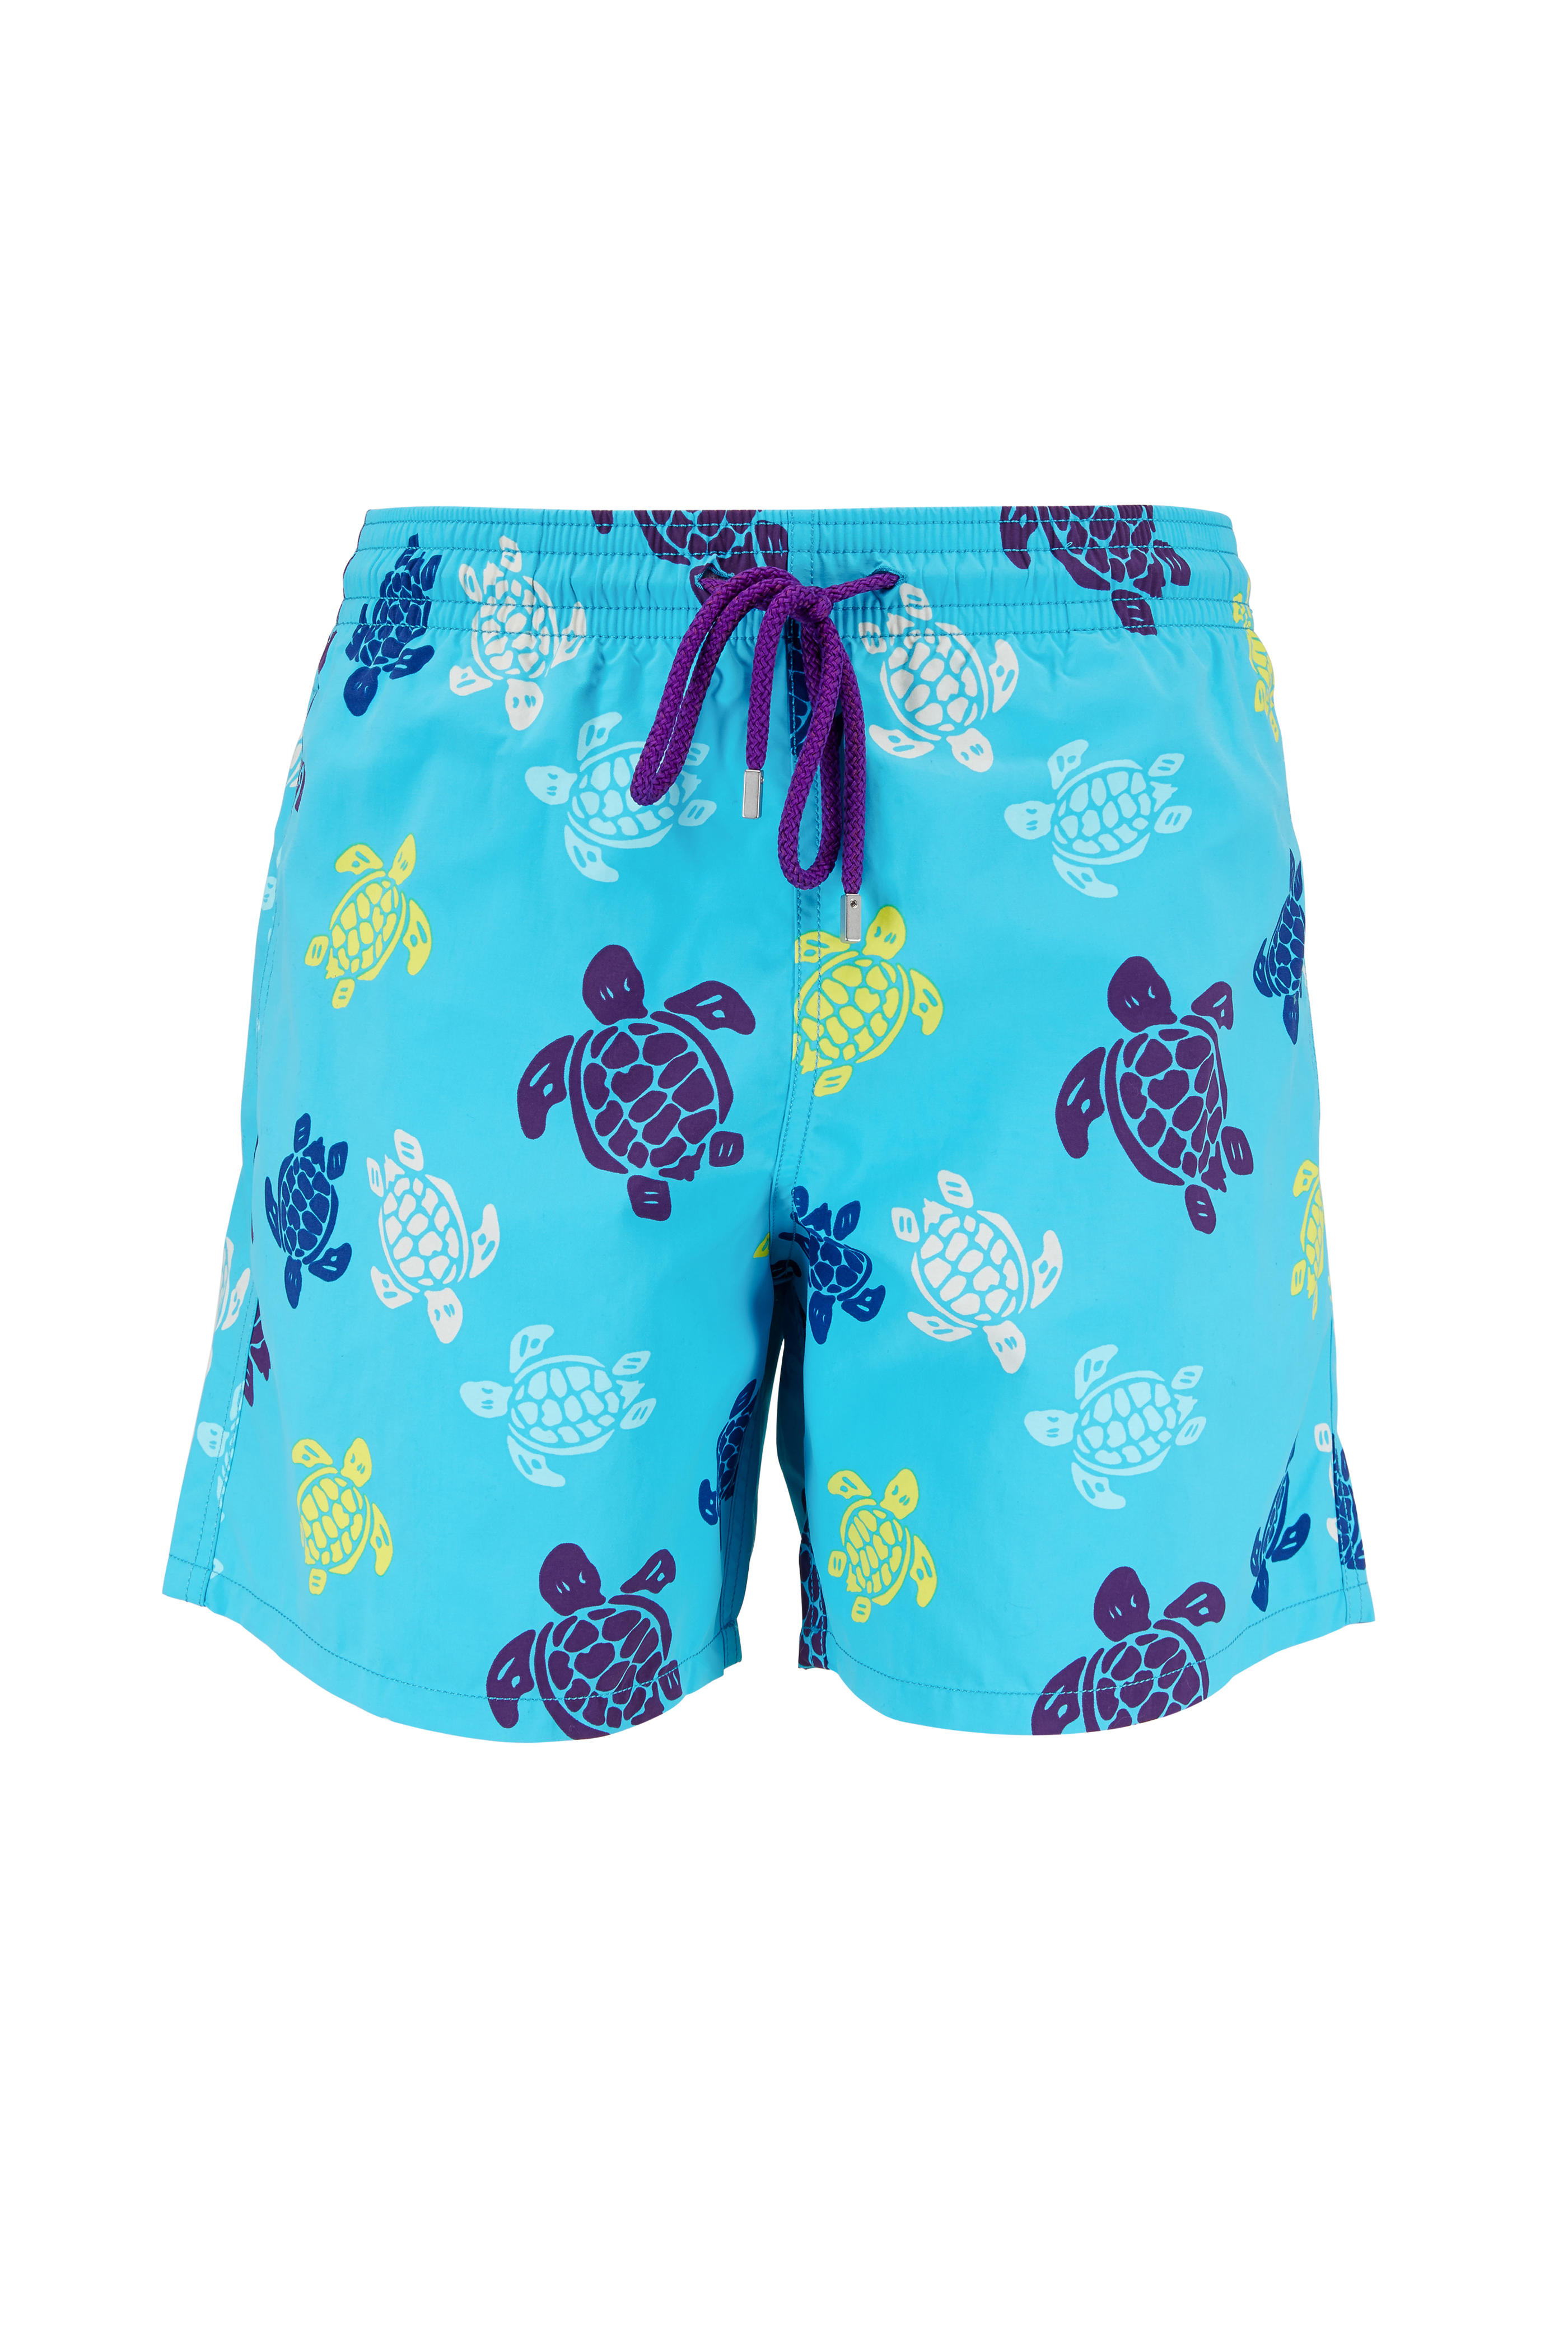 79fa5d2b46522 Vilebrequin - Moorea Blue Turtle Swim Trunks | Mitchell Stores